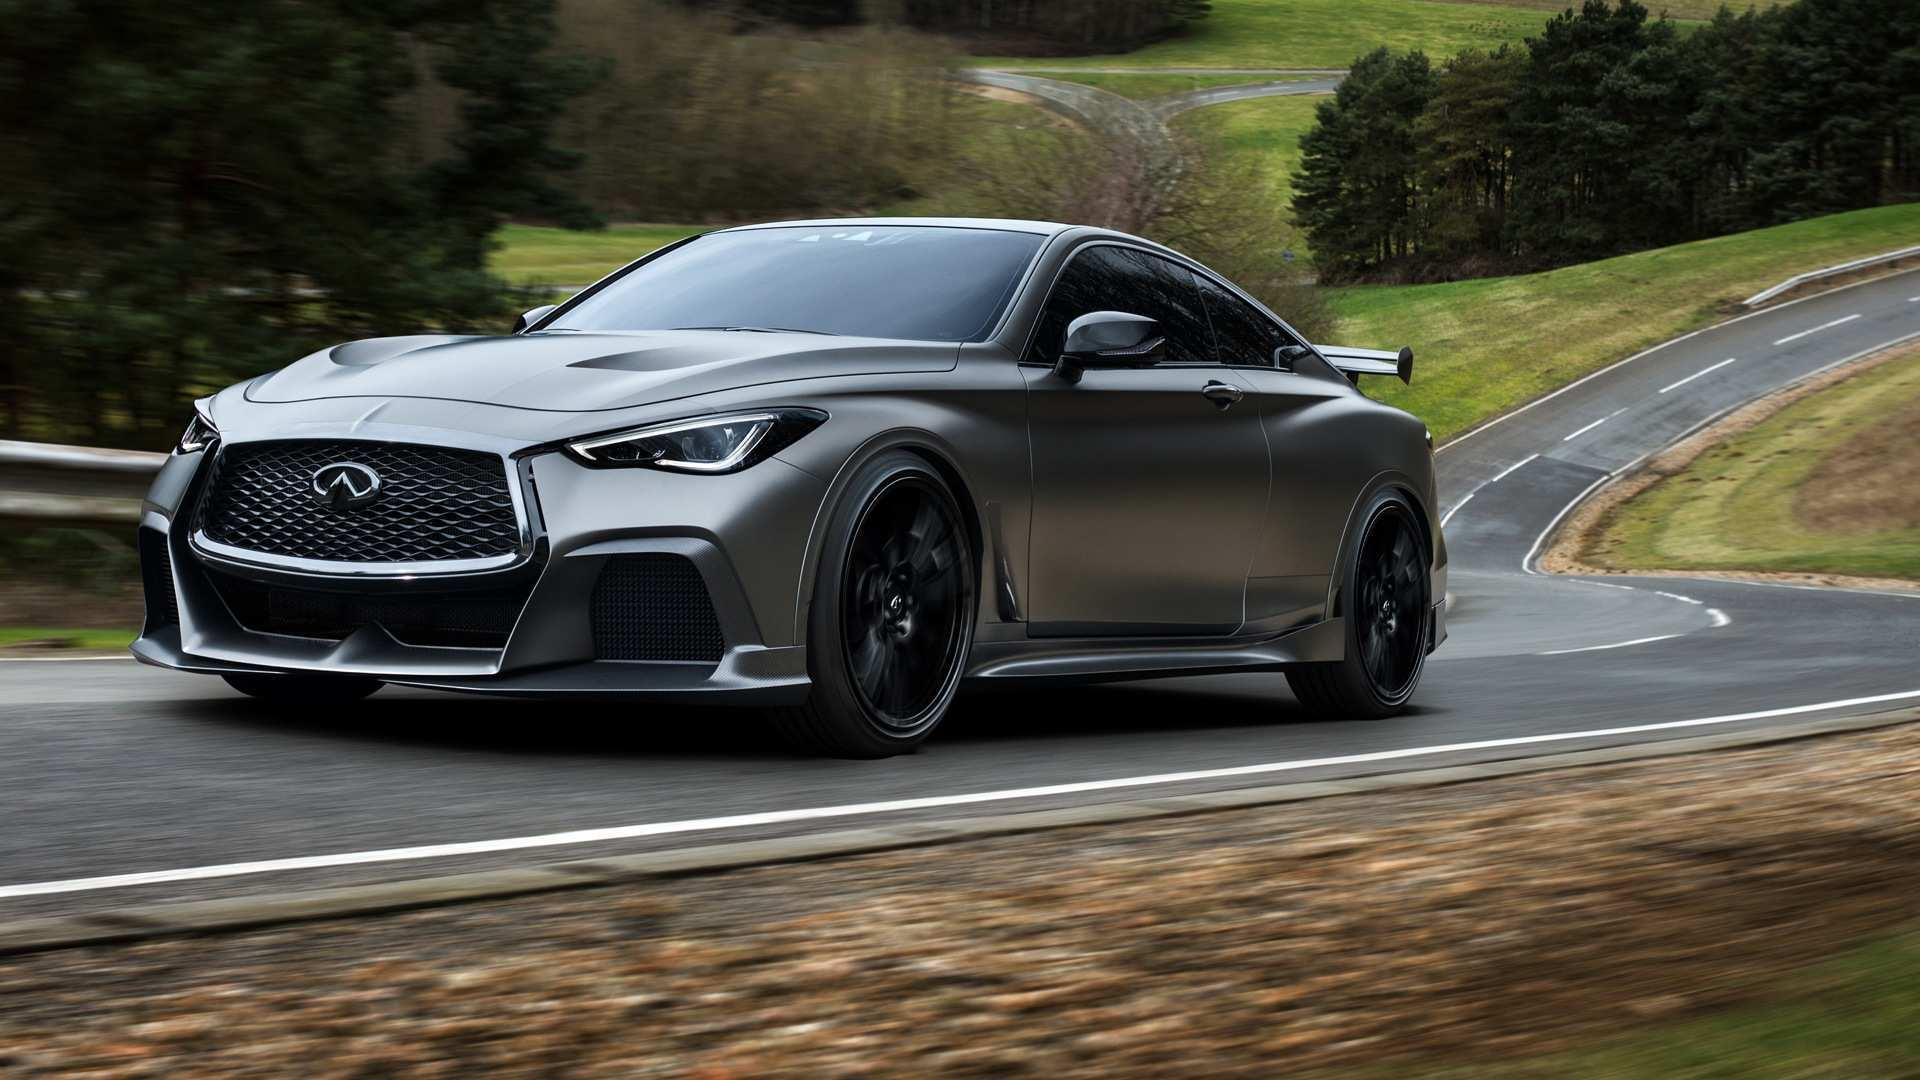 13 Best Review 2020 Infiniti Q60s Wallpaper with 2020 Infiniti Q60s